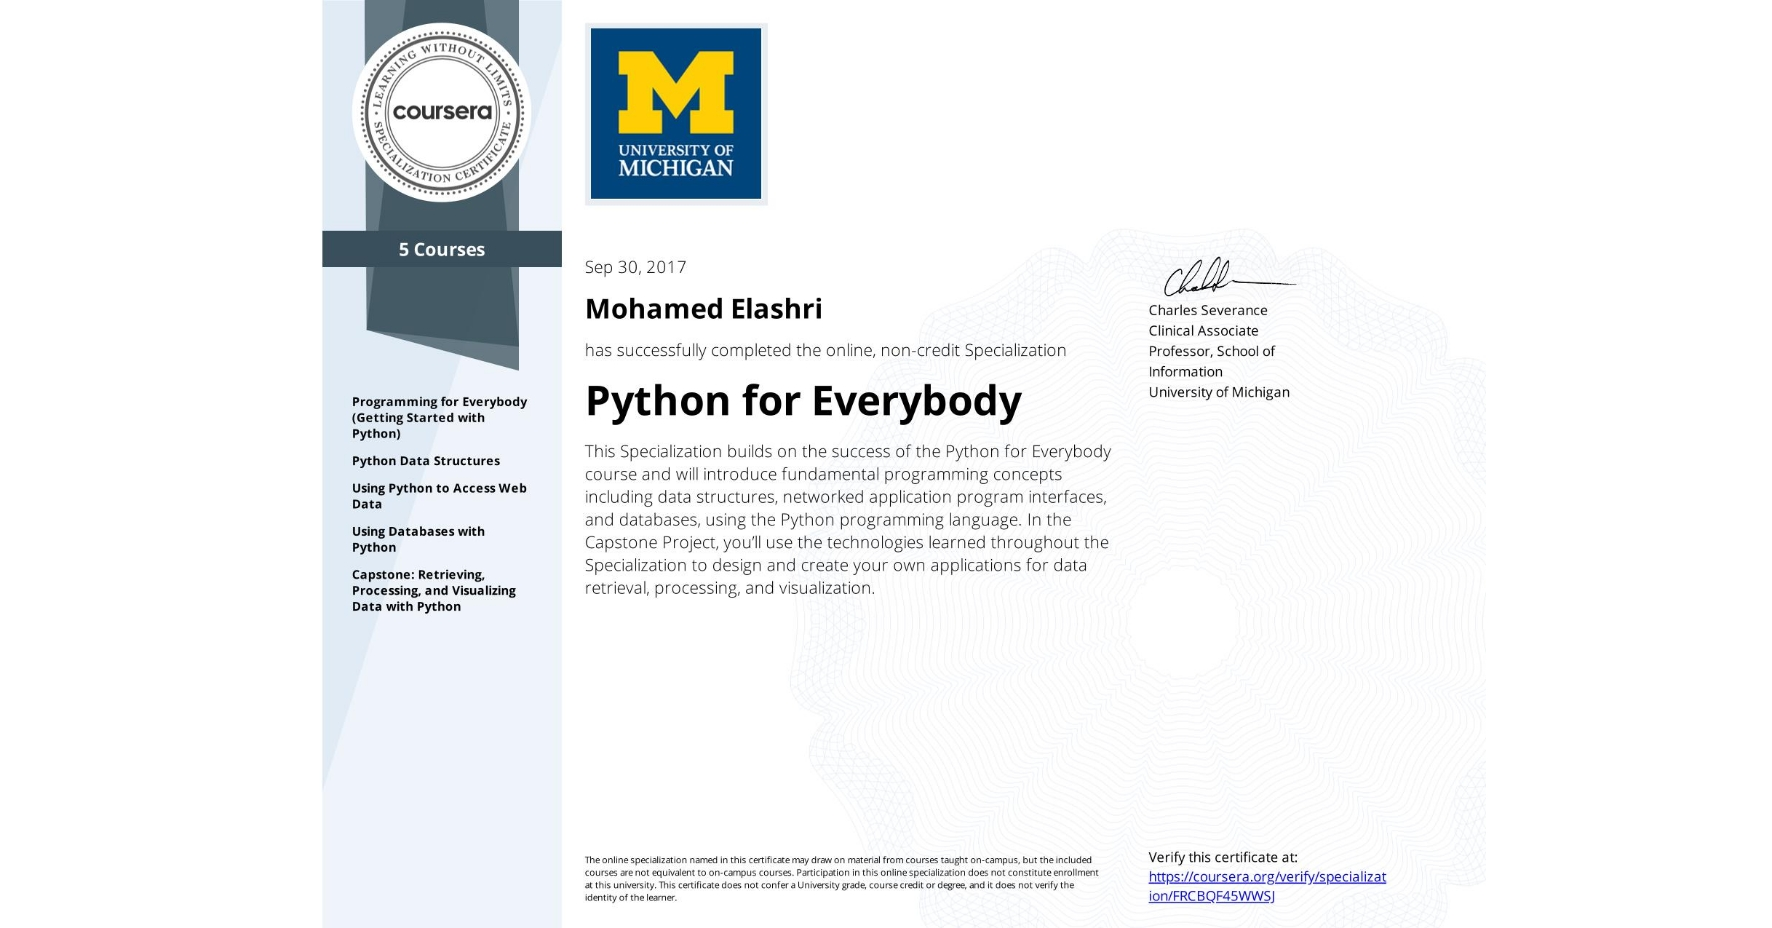 View certificate for Mohamed Elashri, Python for Everybody, offered through Coursera. This Specialization builds on the success of the Python for Everybody course and will introduce fundamental programming concepts including data structures, networked application program interfaces, and databases, using the Python programming language. In the Capstone Project, you'll use the technologies learned throughout the Specialization to design and create your own applications for data retrieval, processing, and visualization.